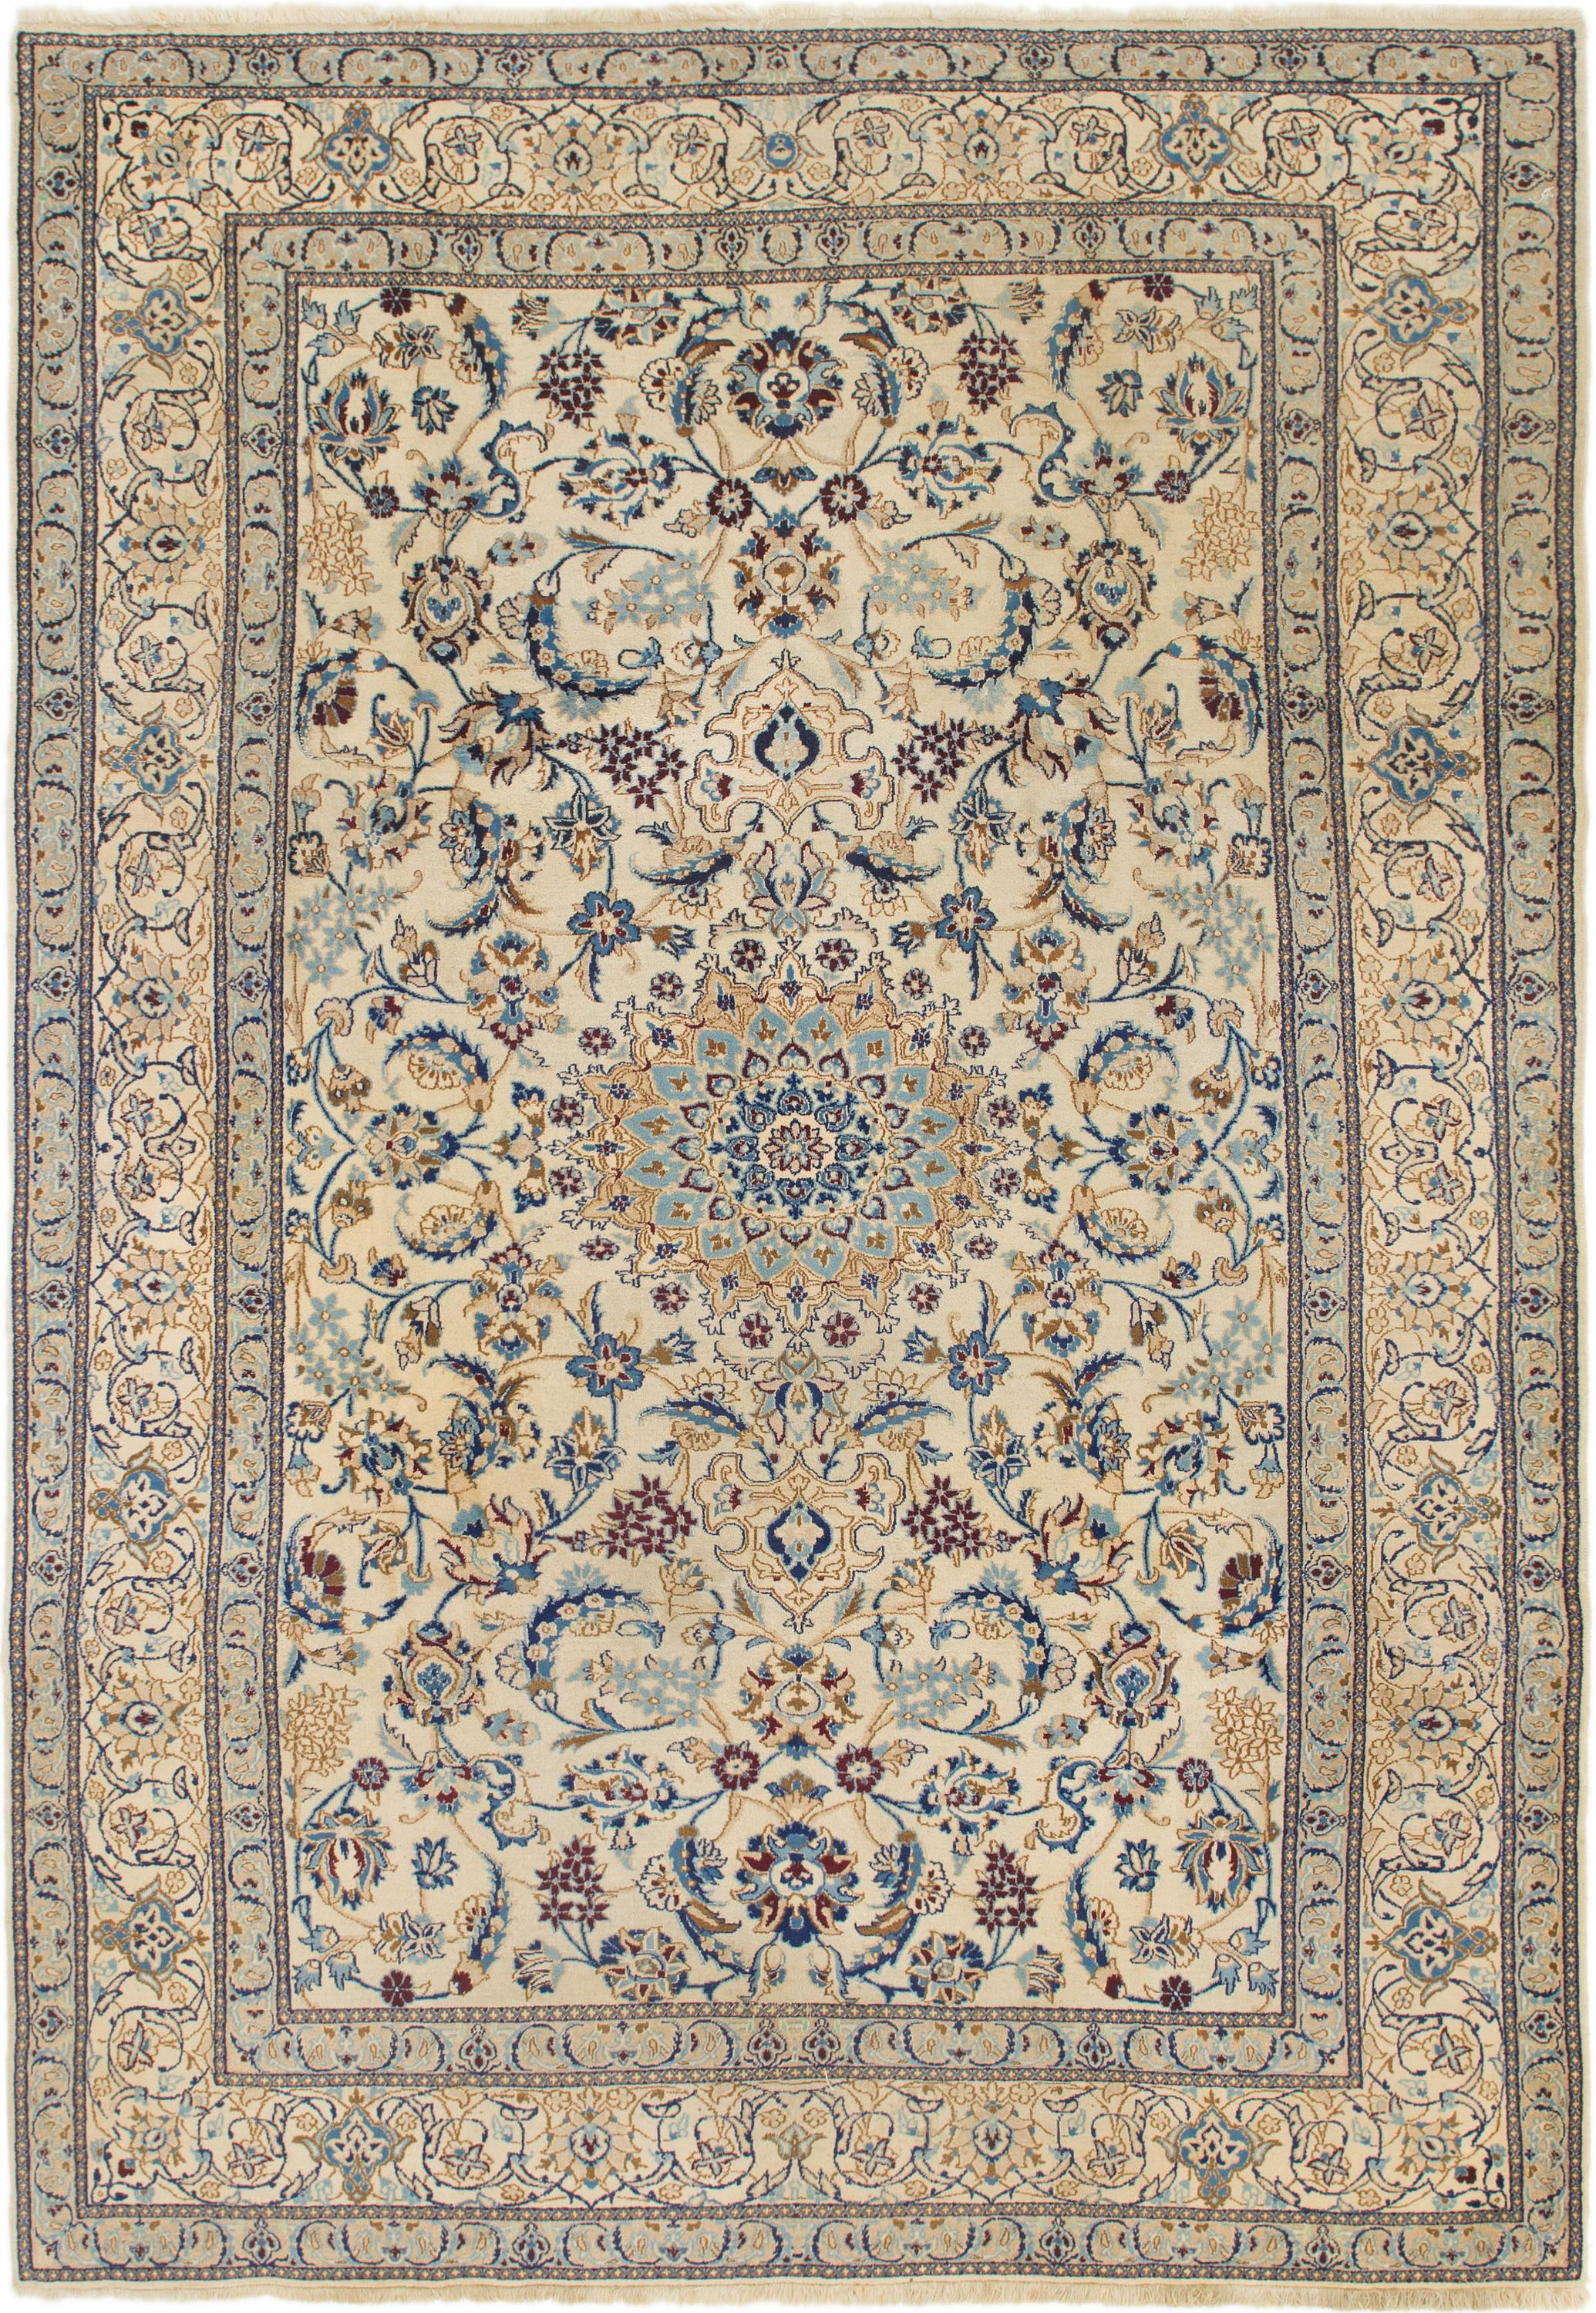 Nain Carpets Uk Carpet Vidalondon